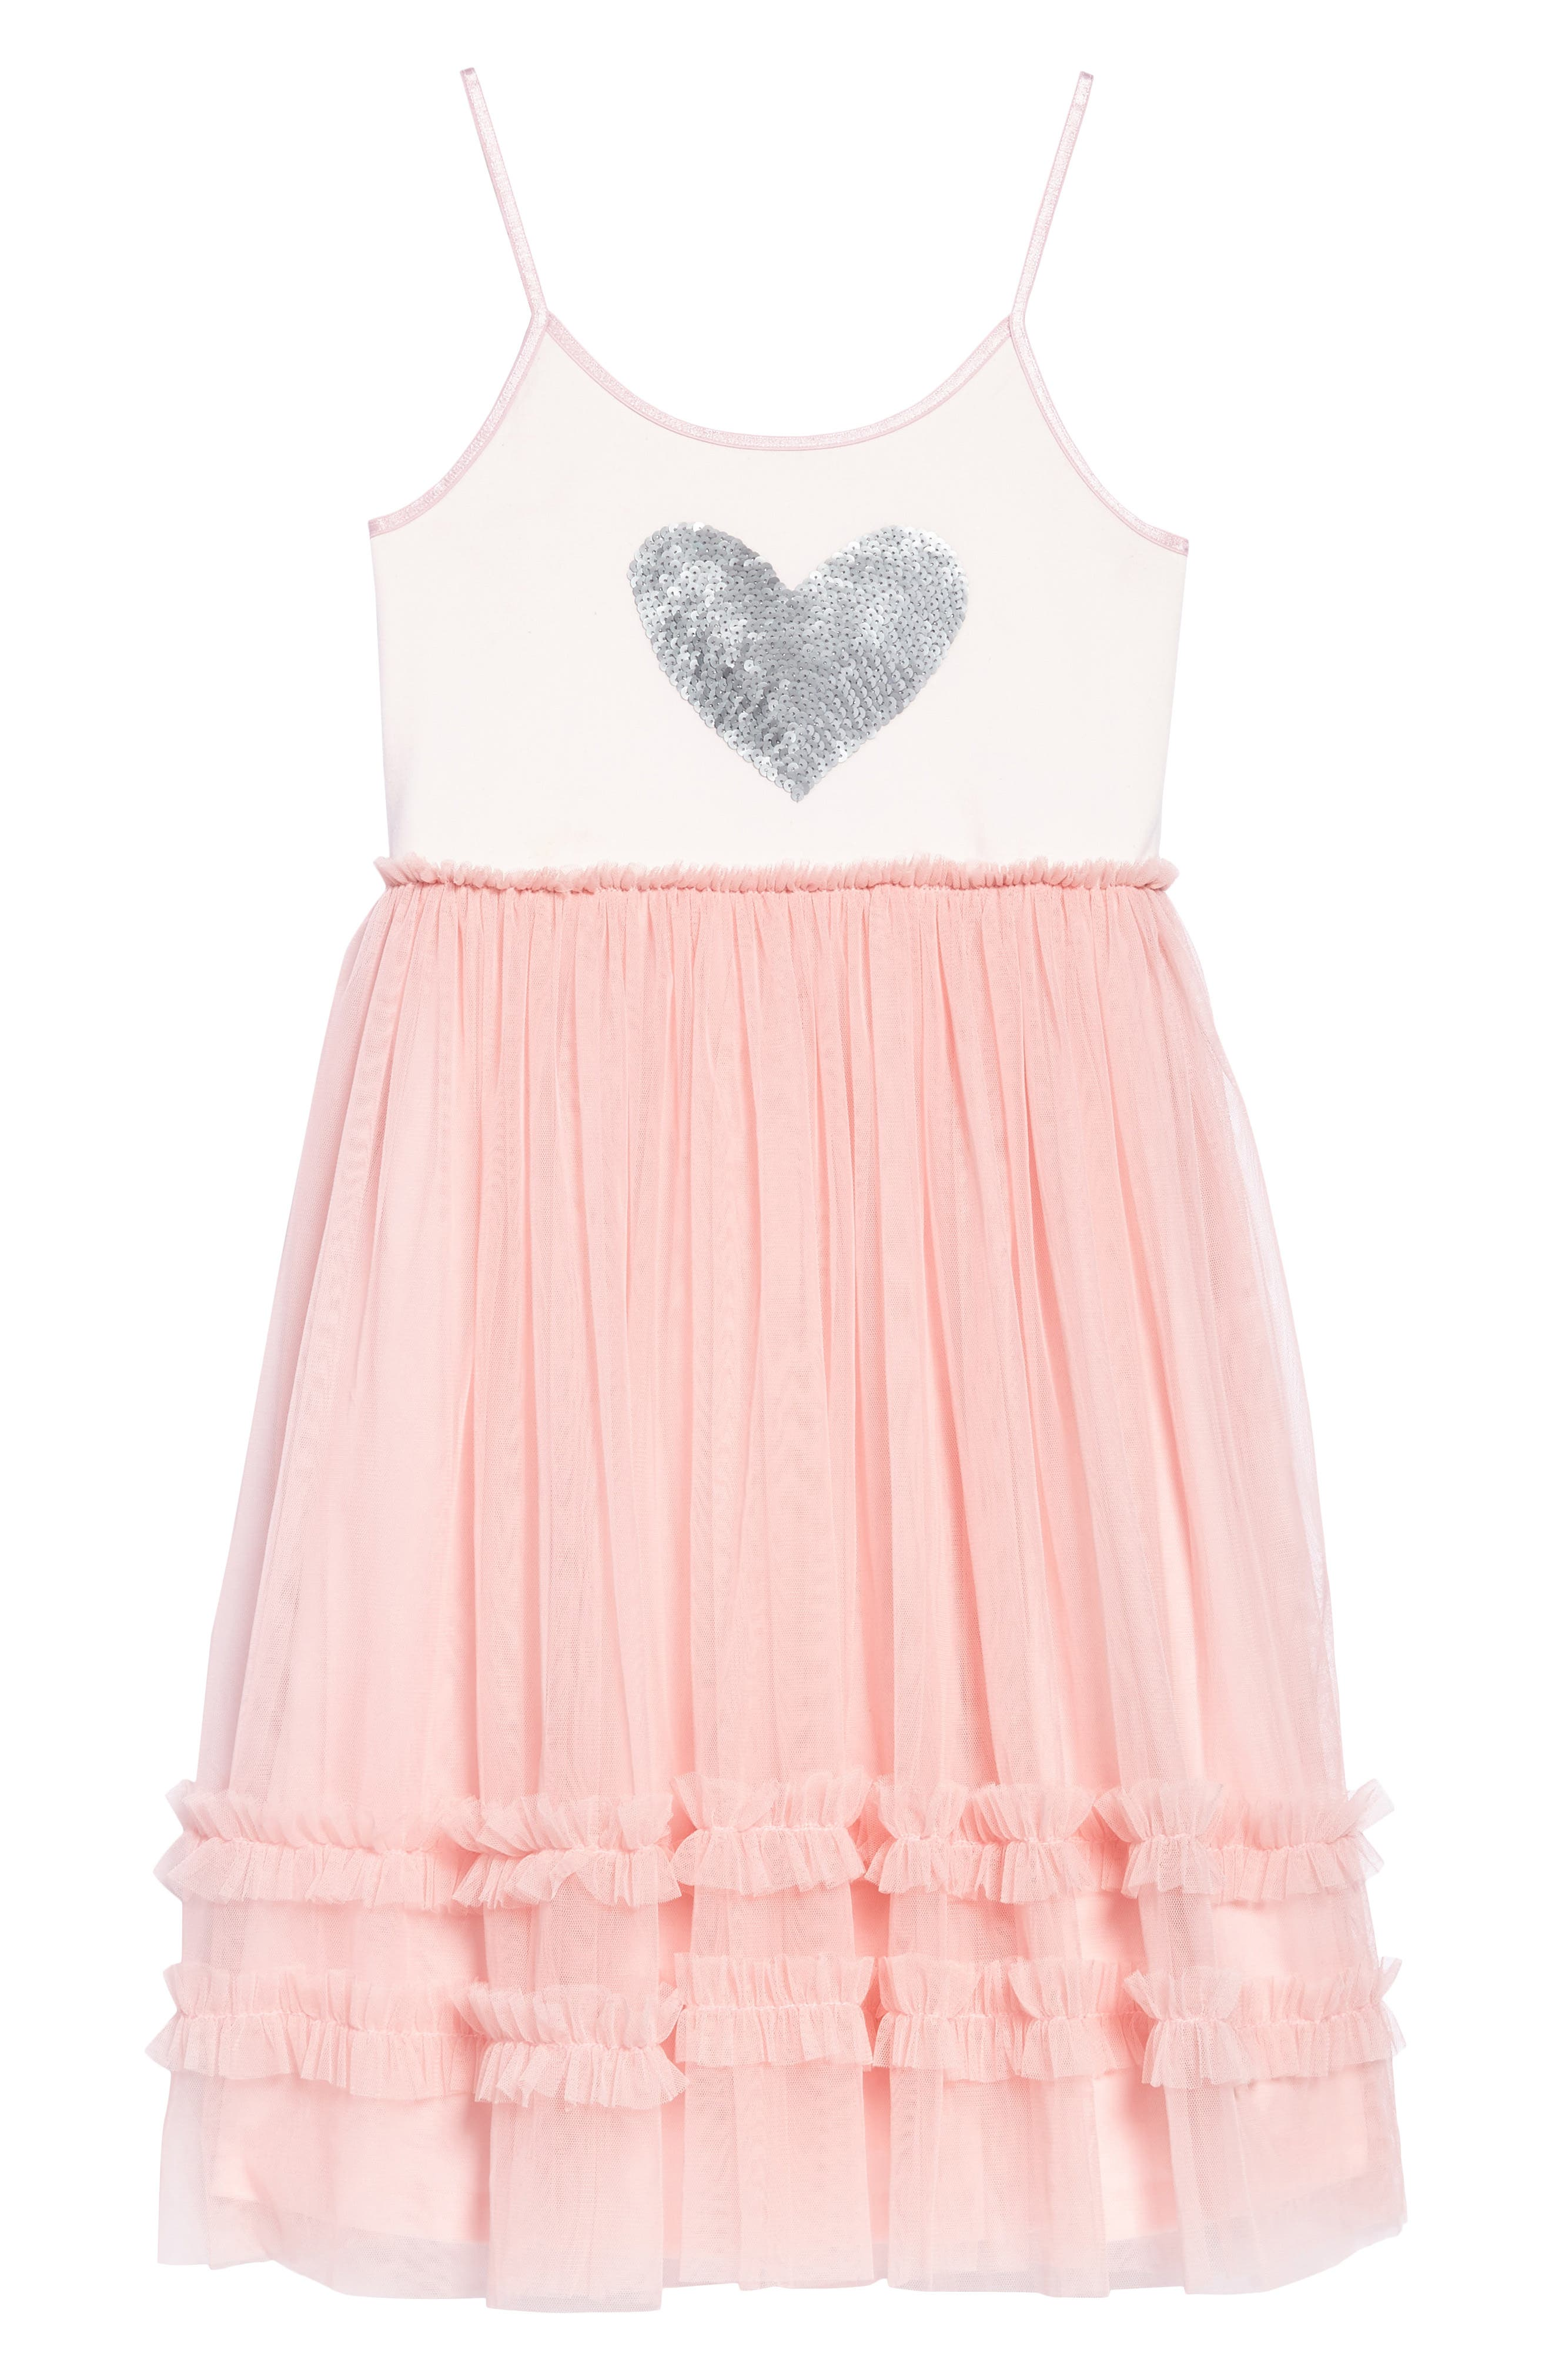 Sequin Heart Dress with Tulle Skirt,                         Main,                         color, 650